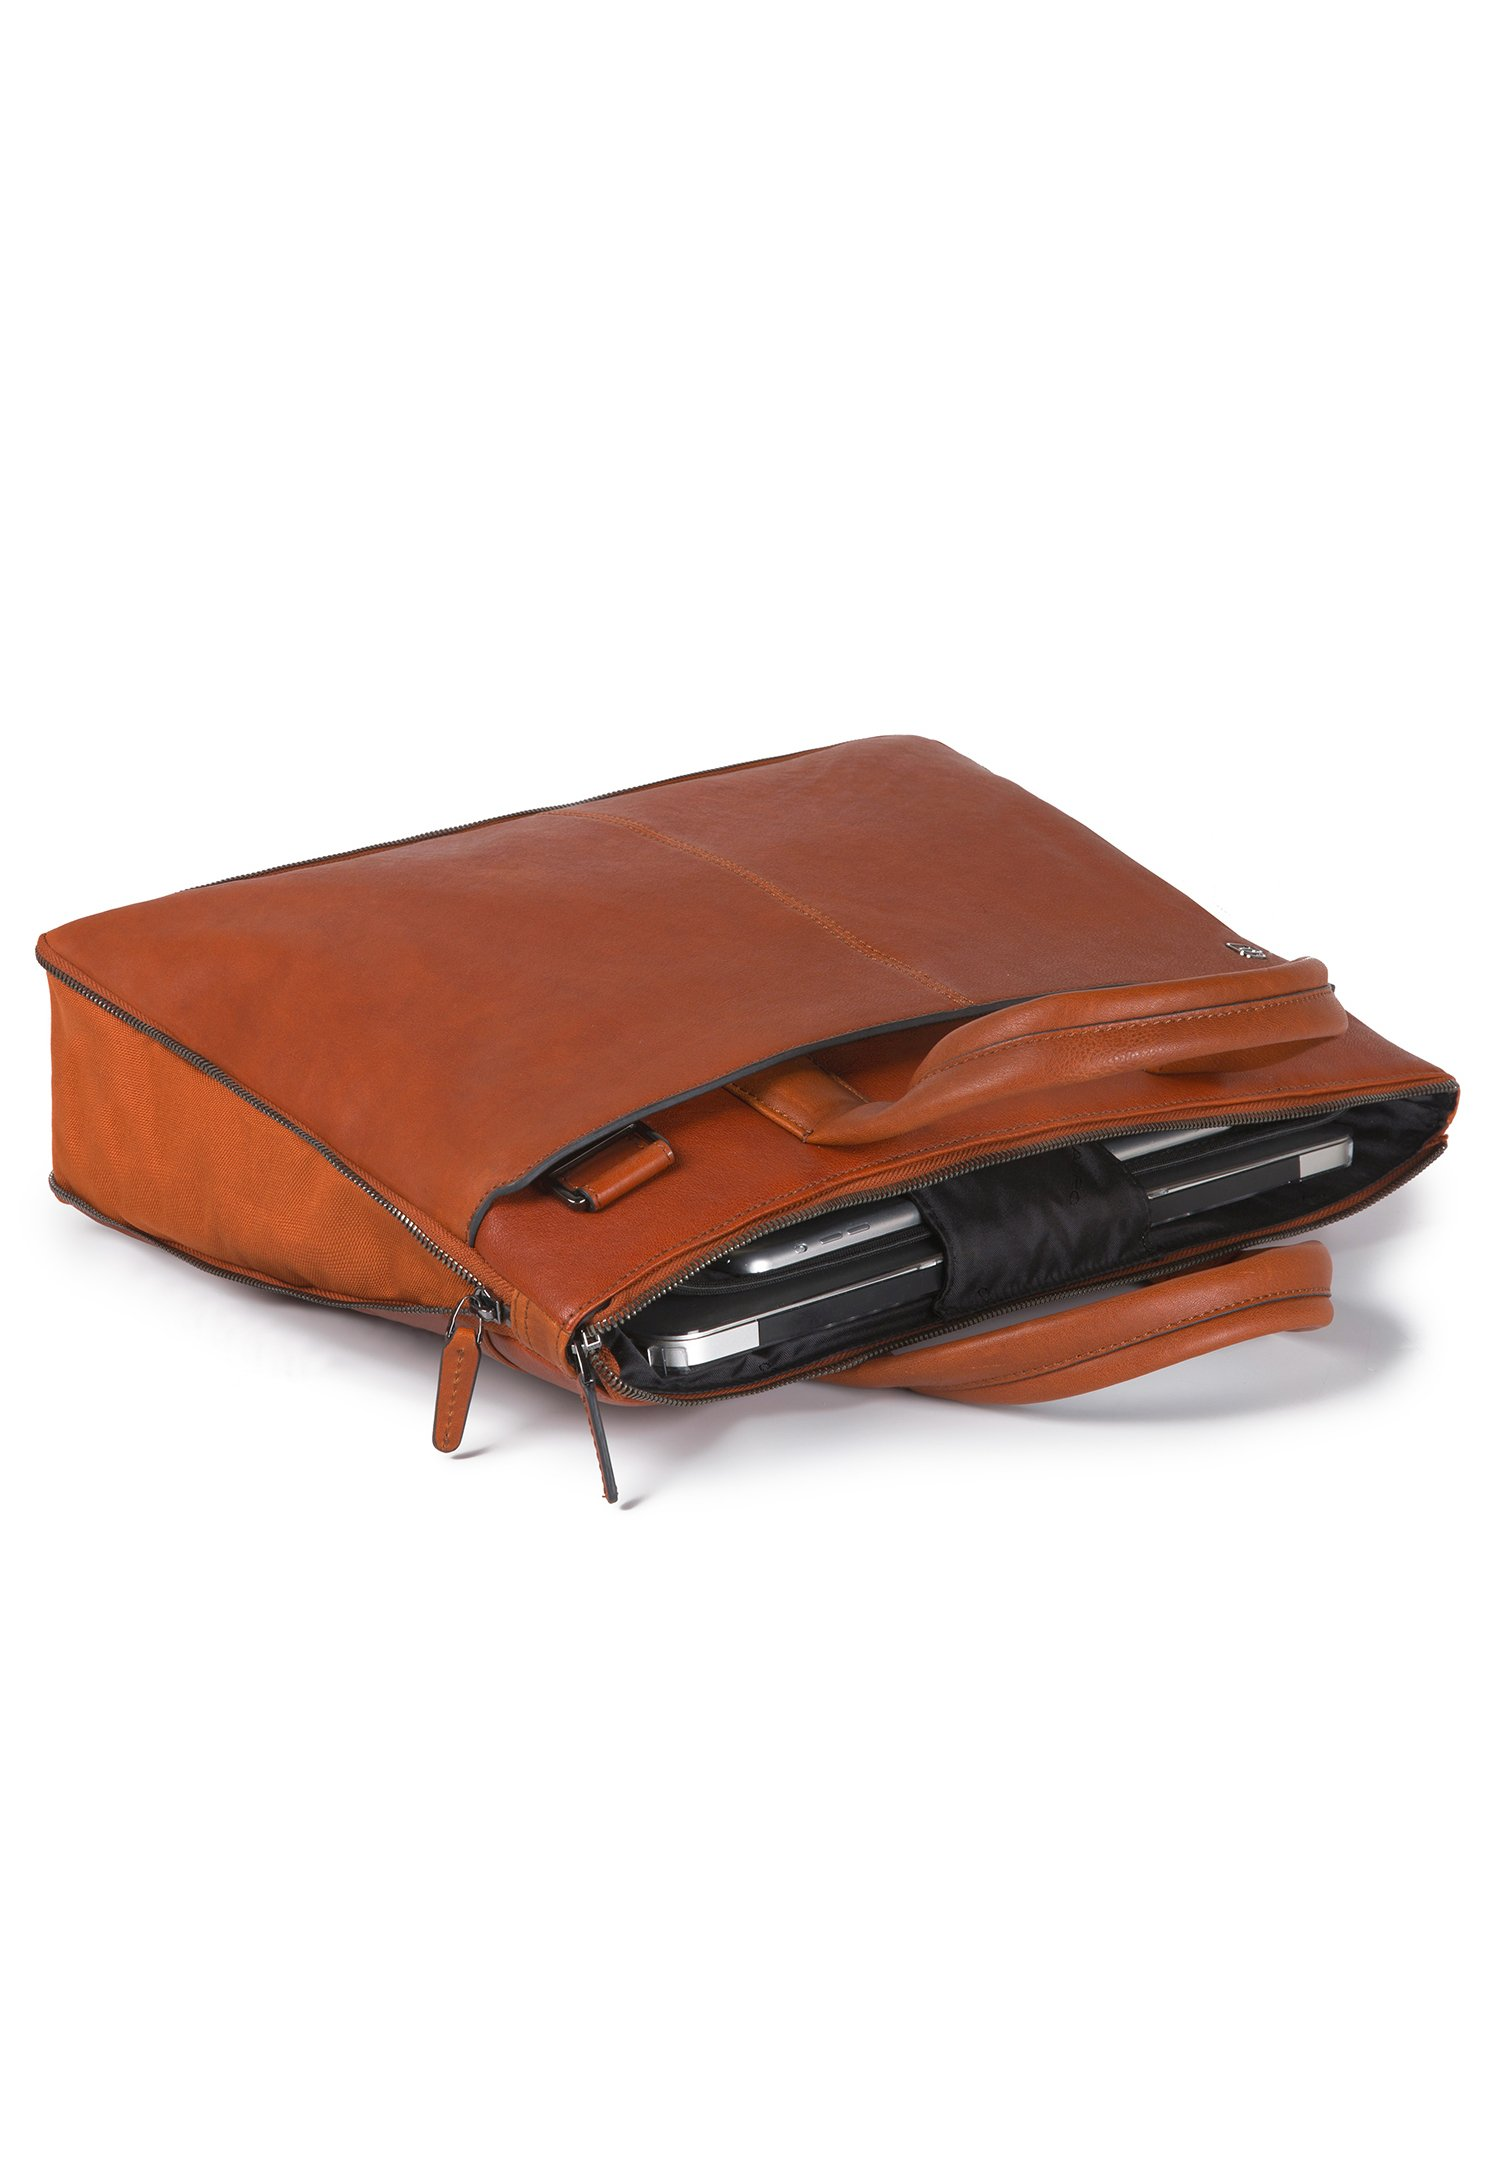 Piquadro BLACK SQUARE  - Aktentasche - orange/cognac - Herrentaschen 8ouSs